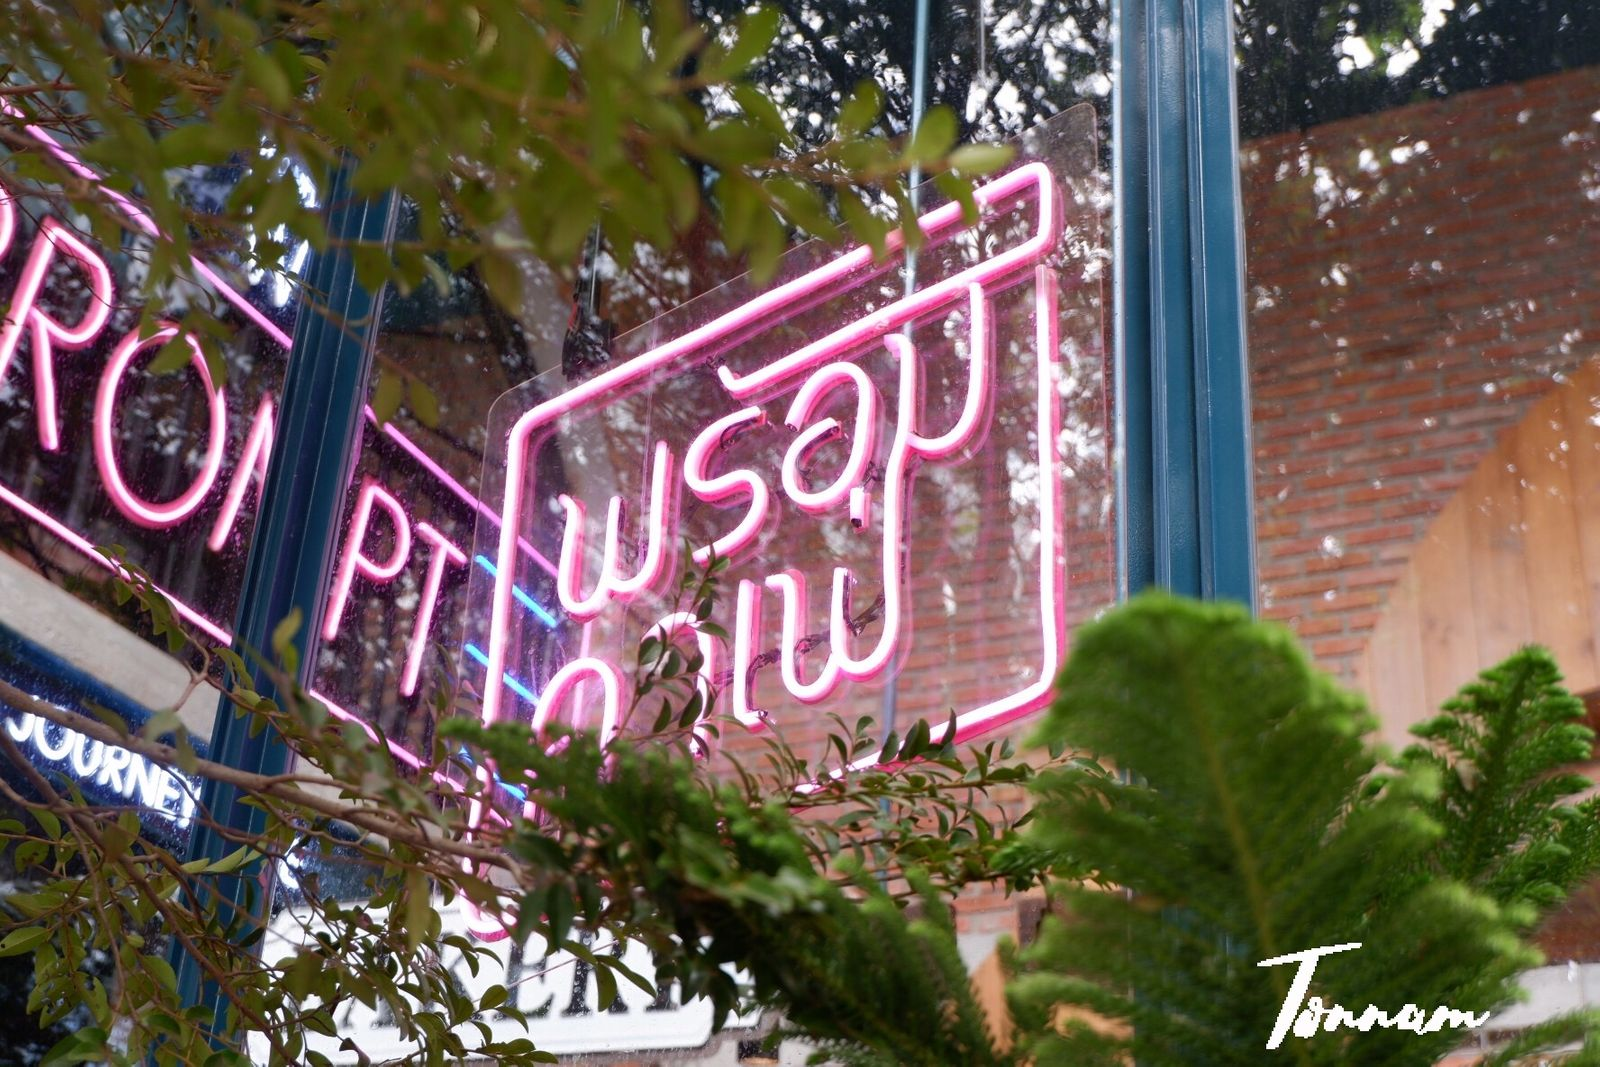 Prompt cafe ระยอง